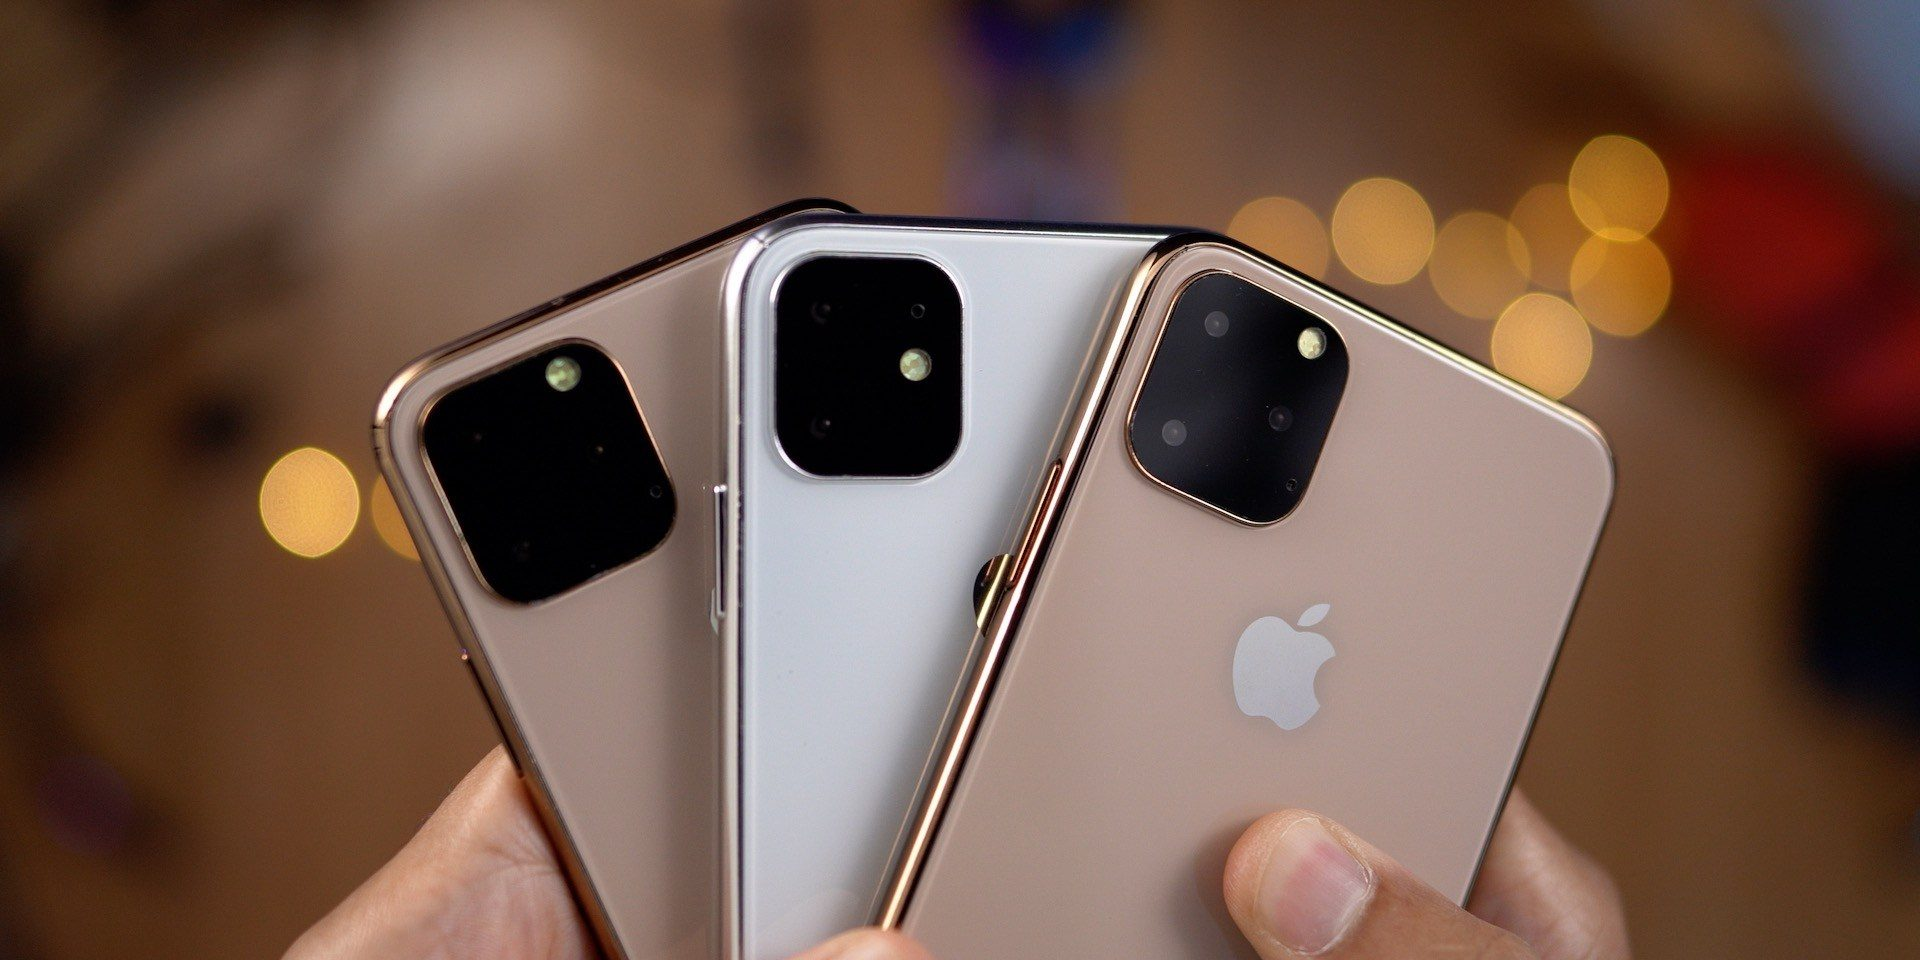 iphone 11 price, new iphone 11, iphone 11 2019, iphone 11 release date, iphone 11 leak, iphone 11 max, iphone 11 release date 2019, iphone 11 rumors